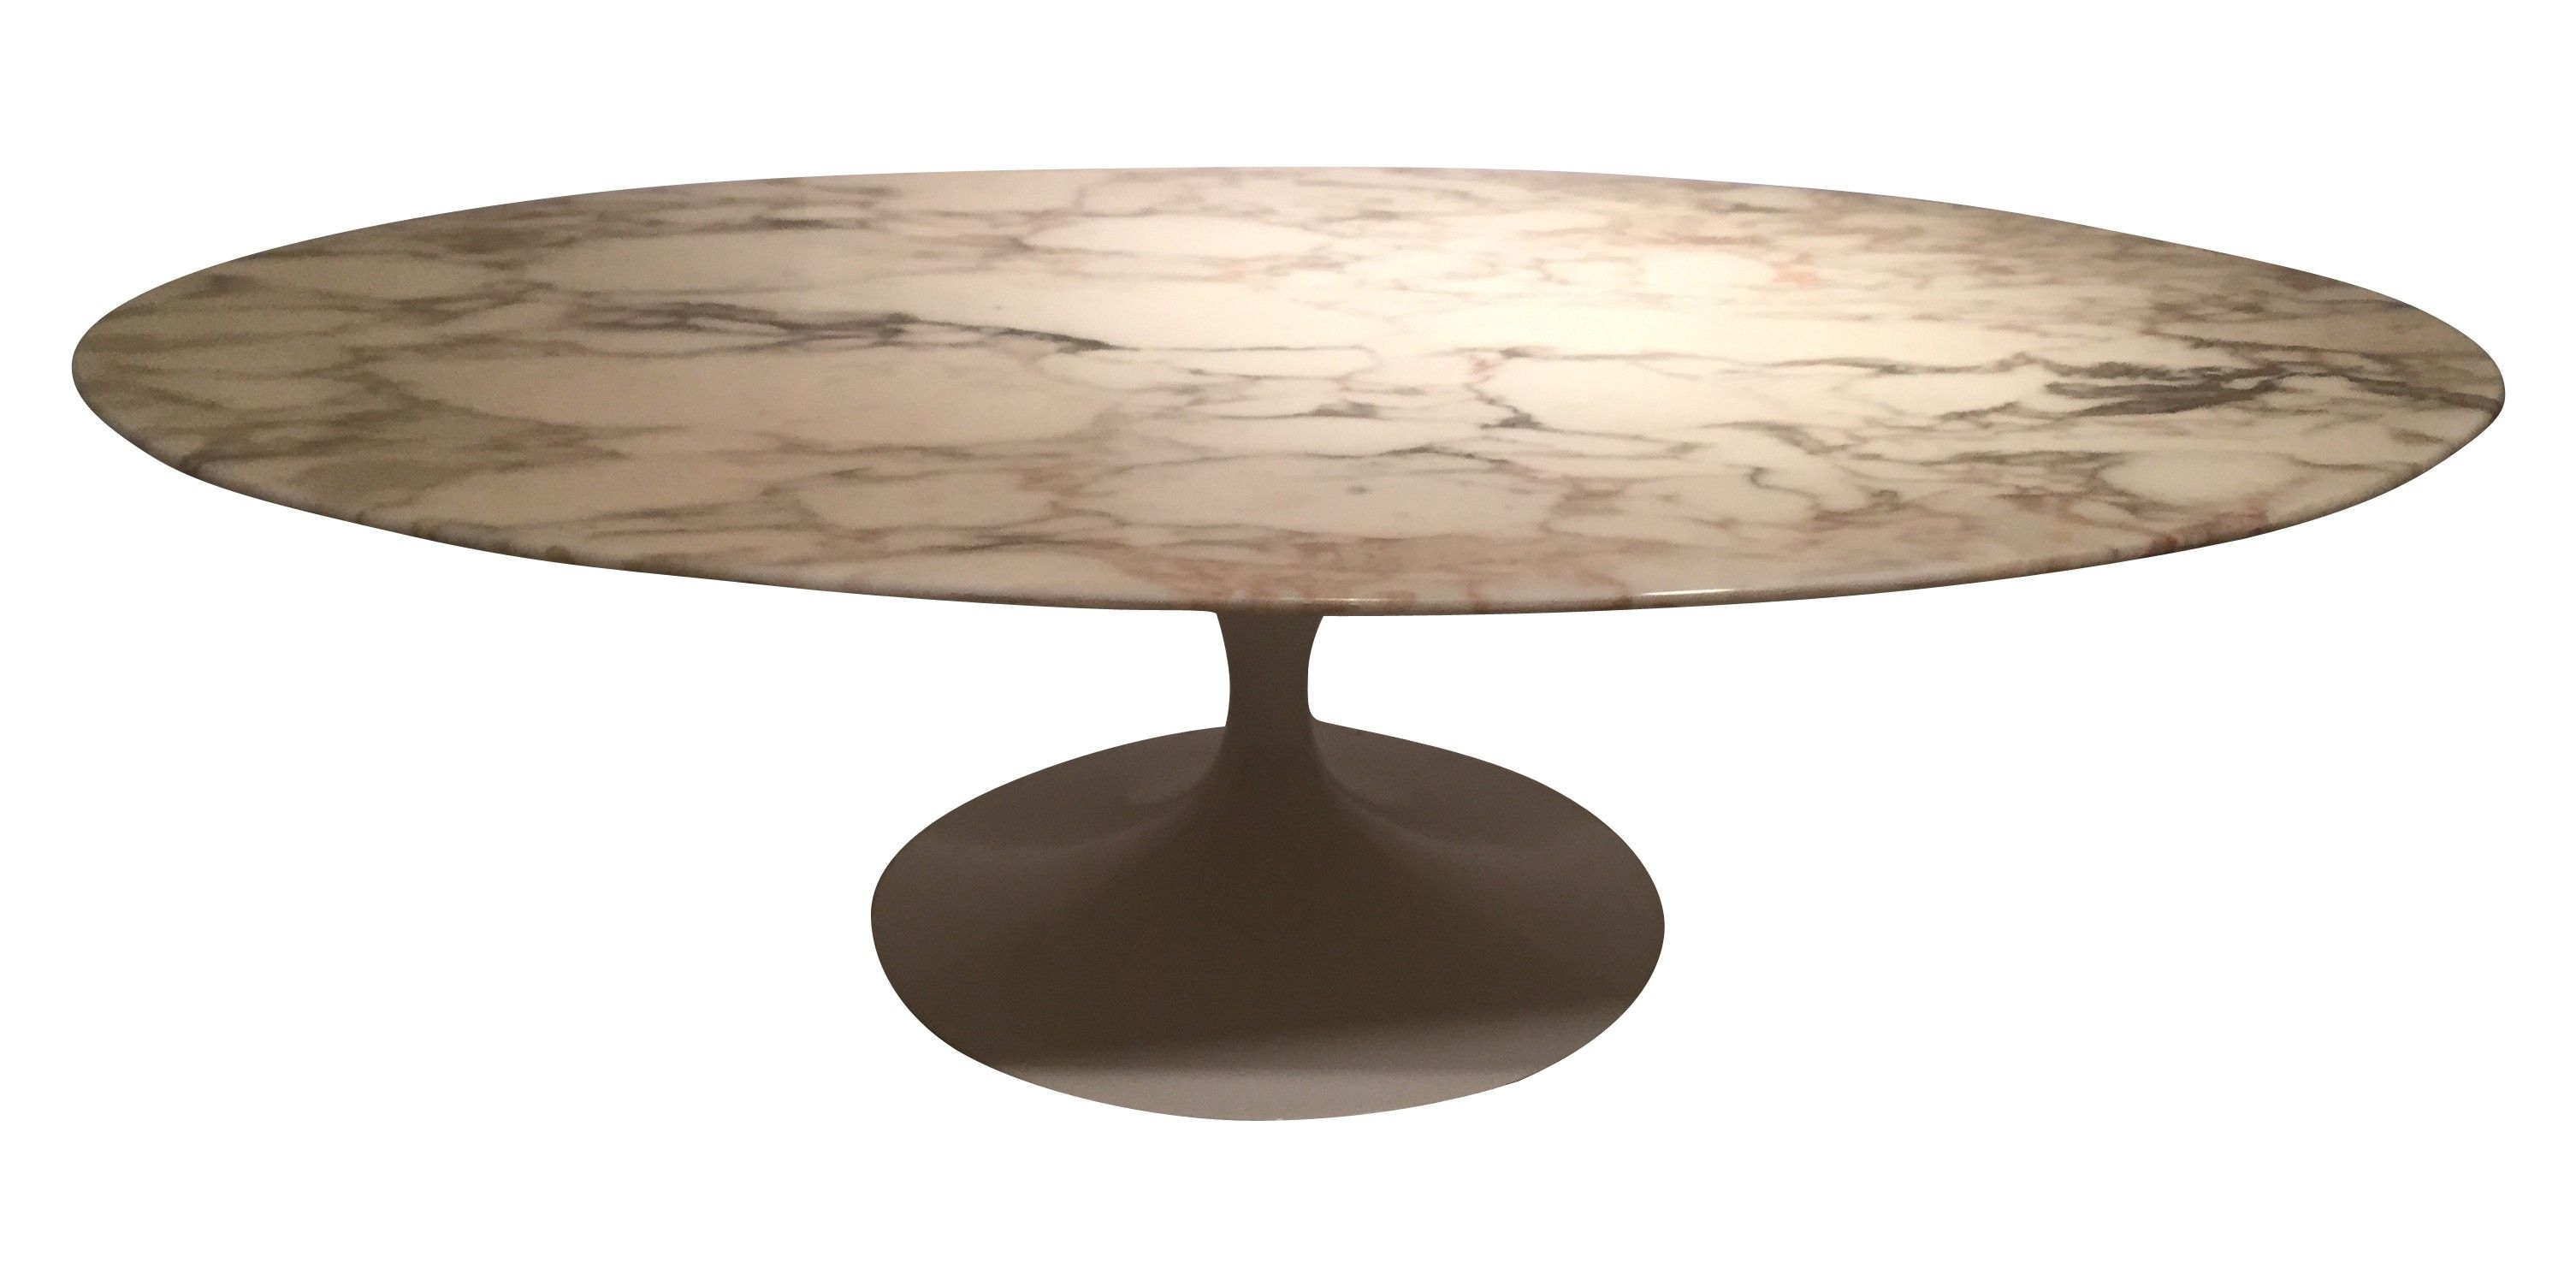 Grande table basse ovale en marbre eero saarinen ann es for Table basse gigogne ronde bois